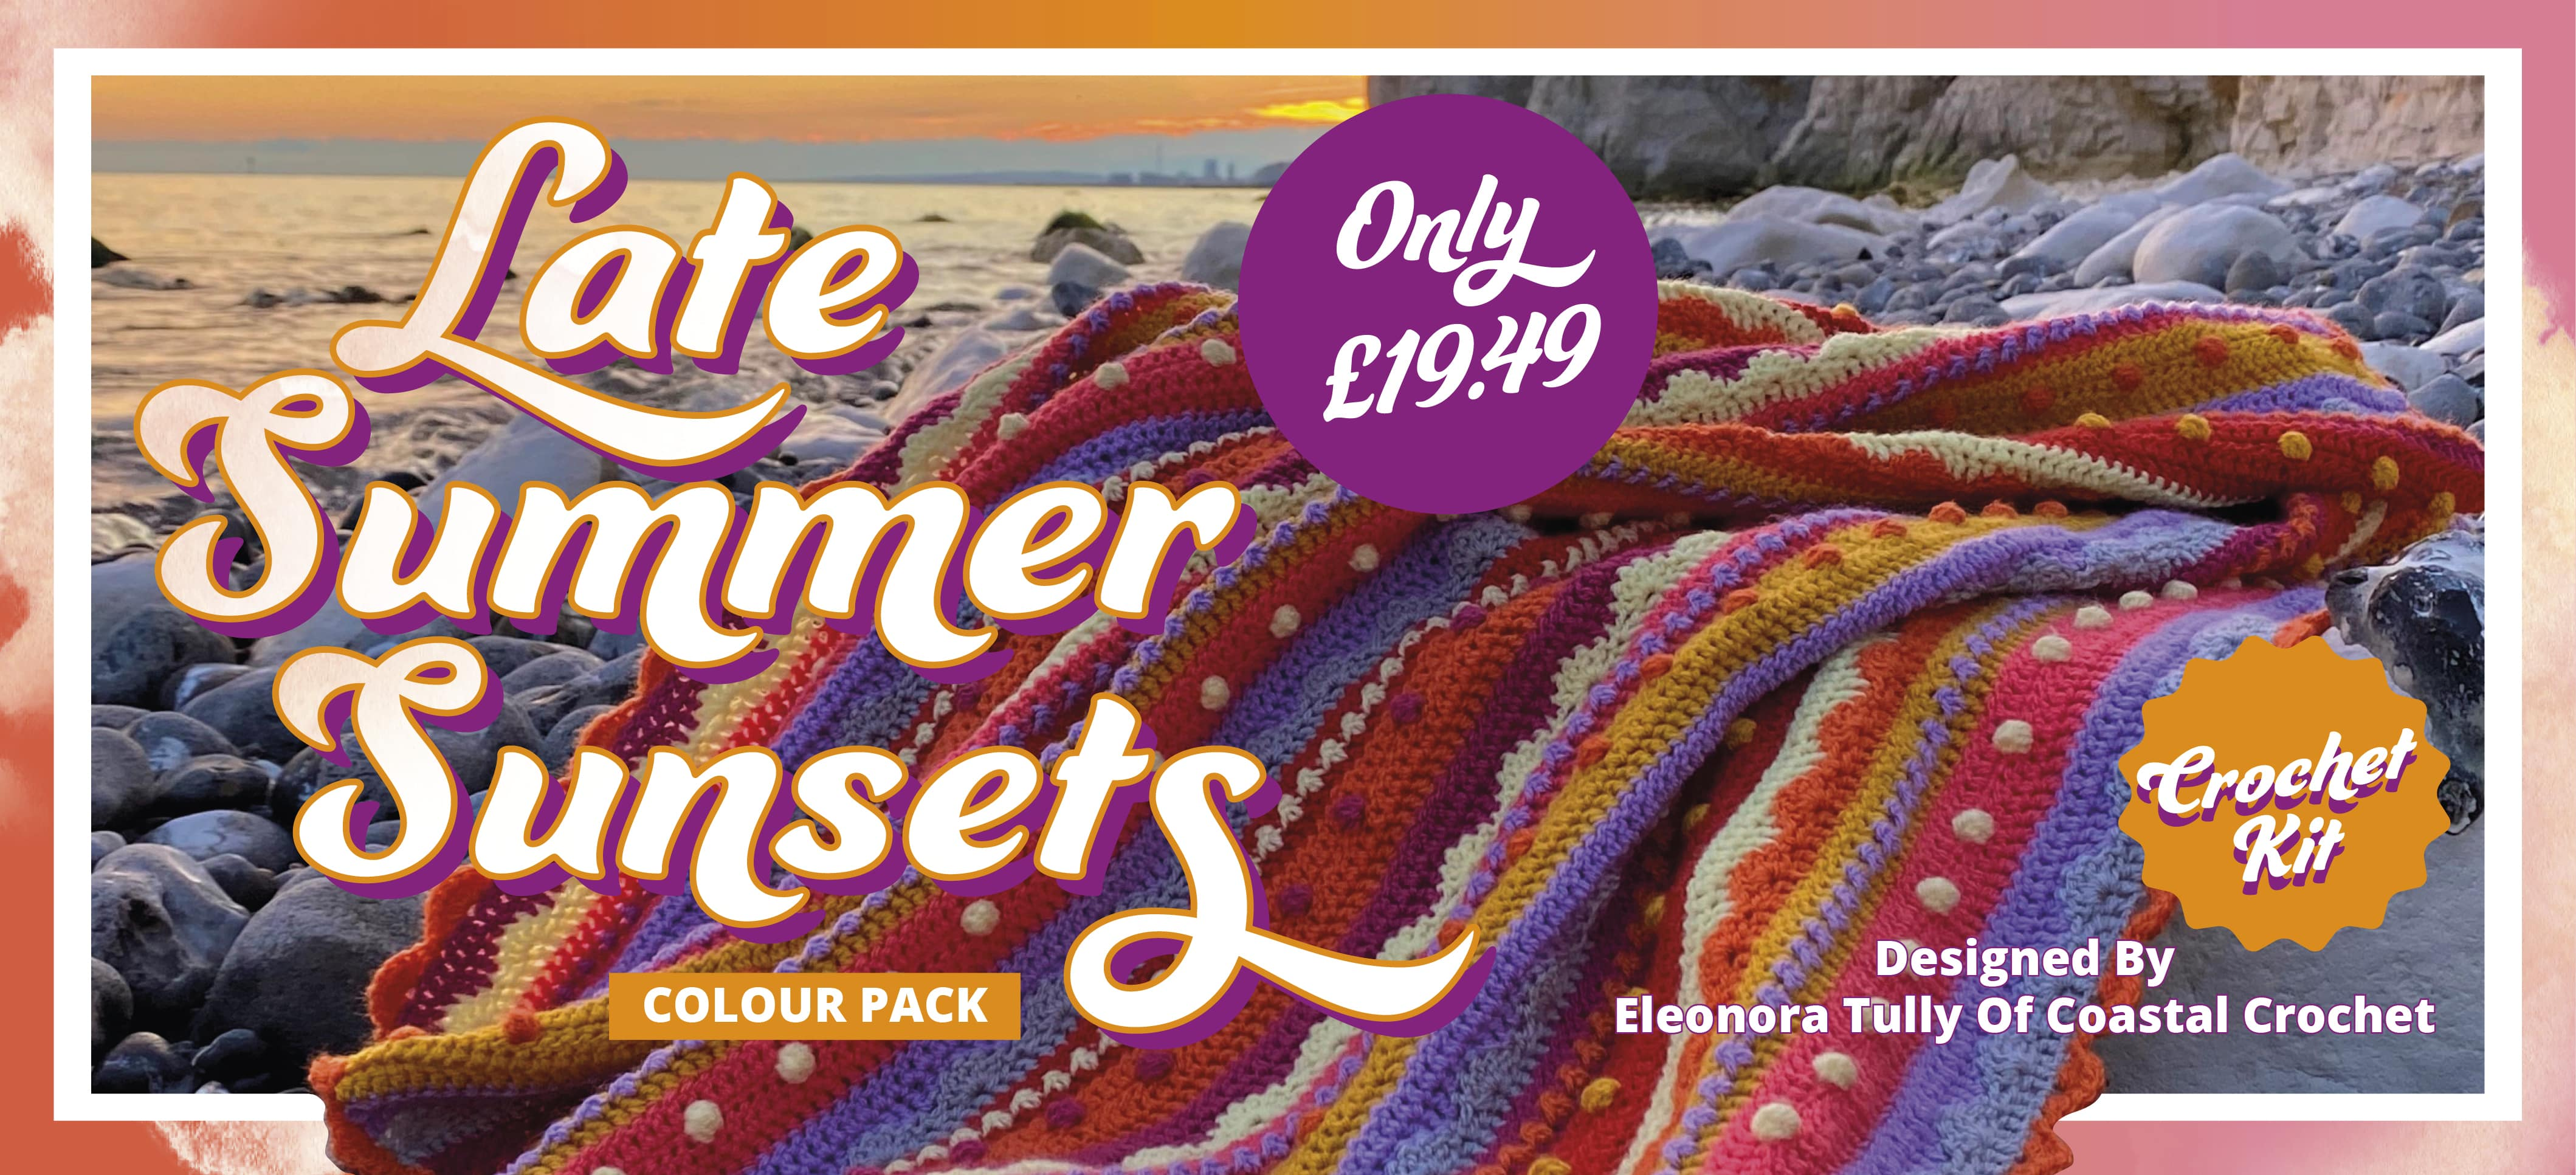 Late Summer Sunsets - Only £19.49 Each